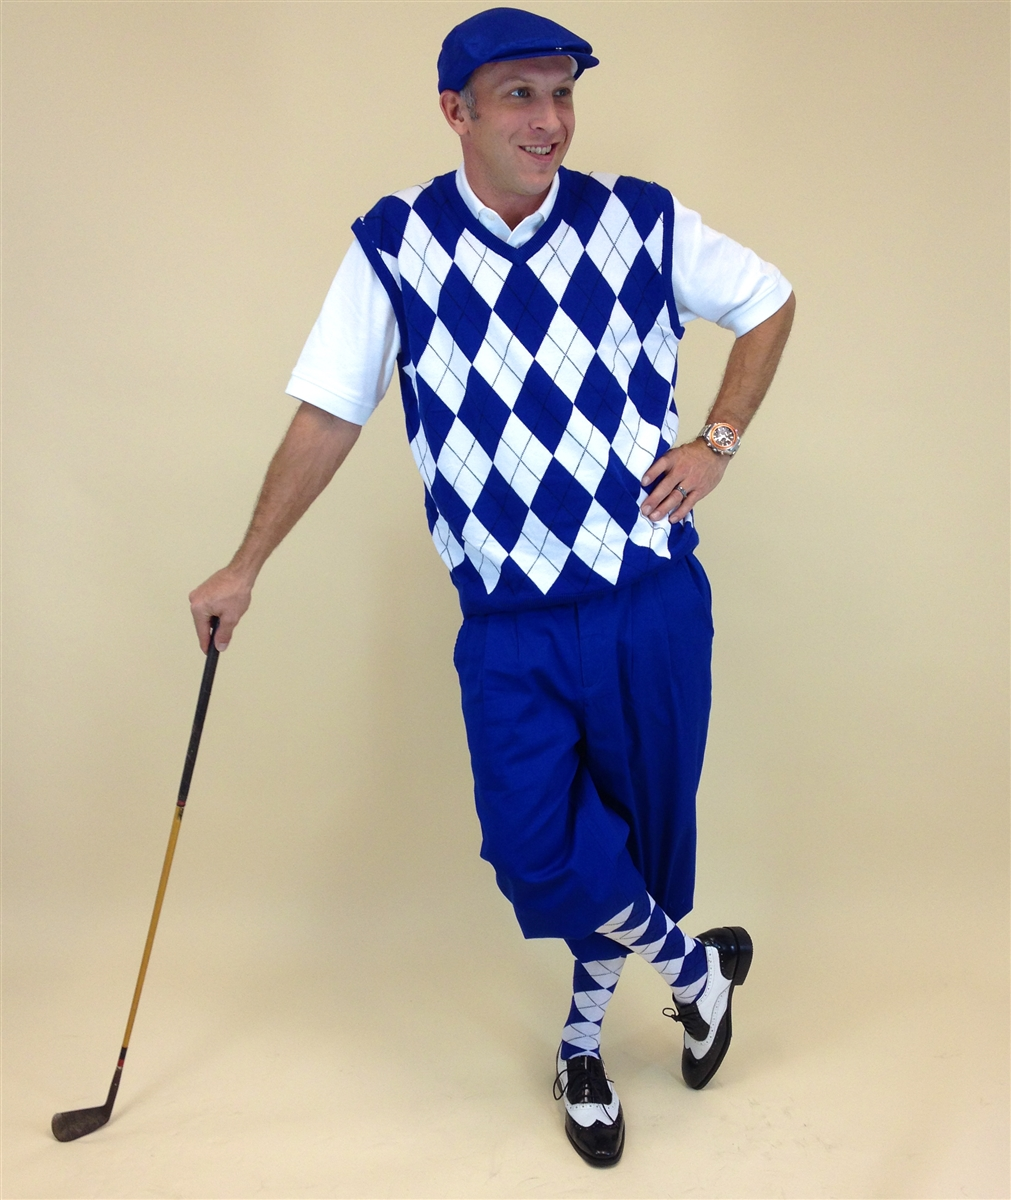 Royal Blue Golf Knickers Outfit